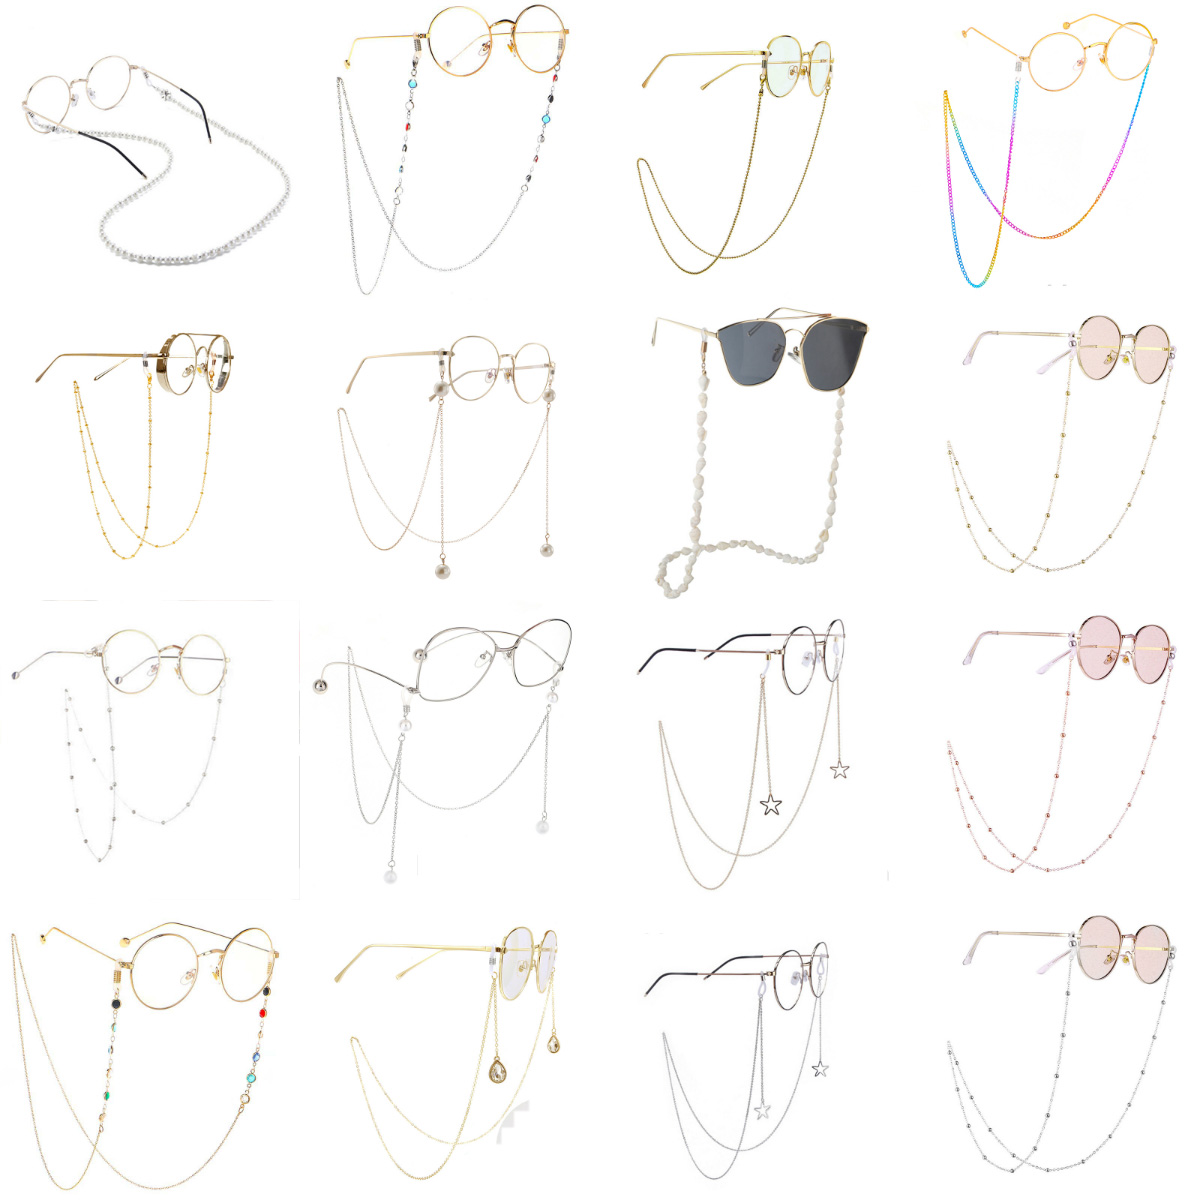 1pcs  Fashion Eyeglass Strap Reading Glasses Hanging Chain Sunglasses Spectacles Holder Neck Cord Glasses Slip Metal Chain